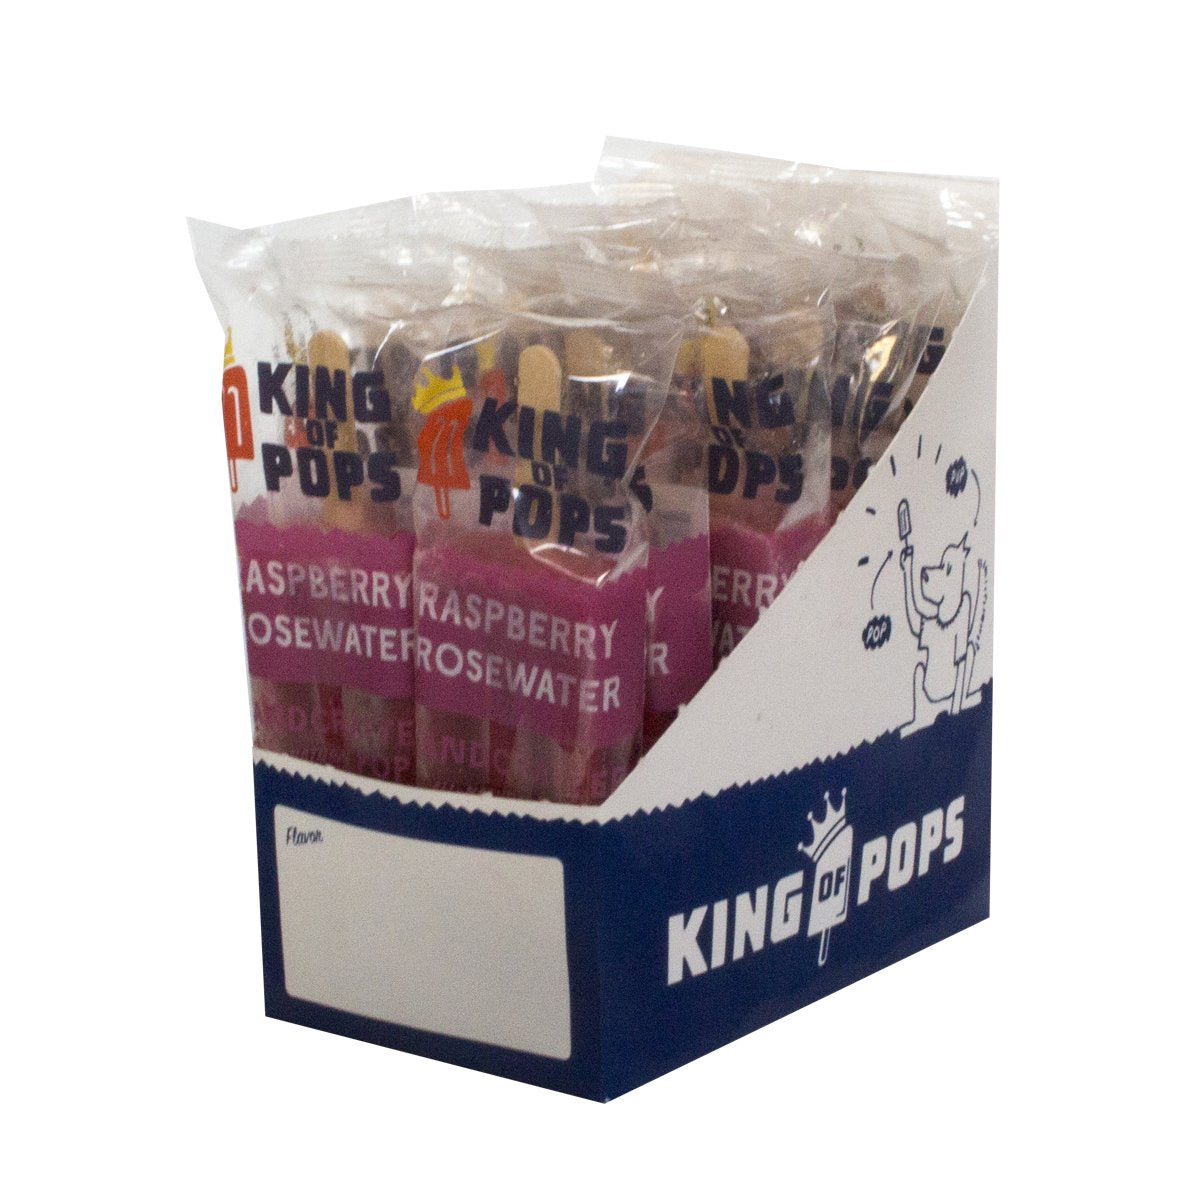 King of Pops - Raspberry Rosewater 12-pack